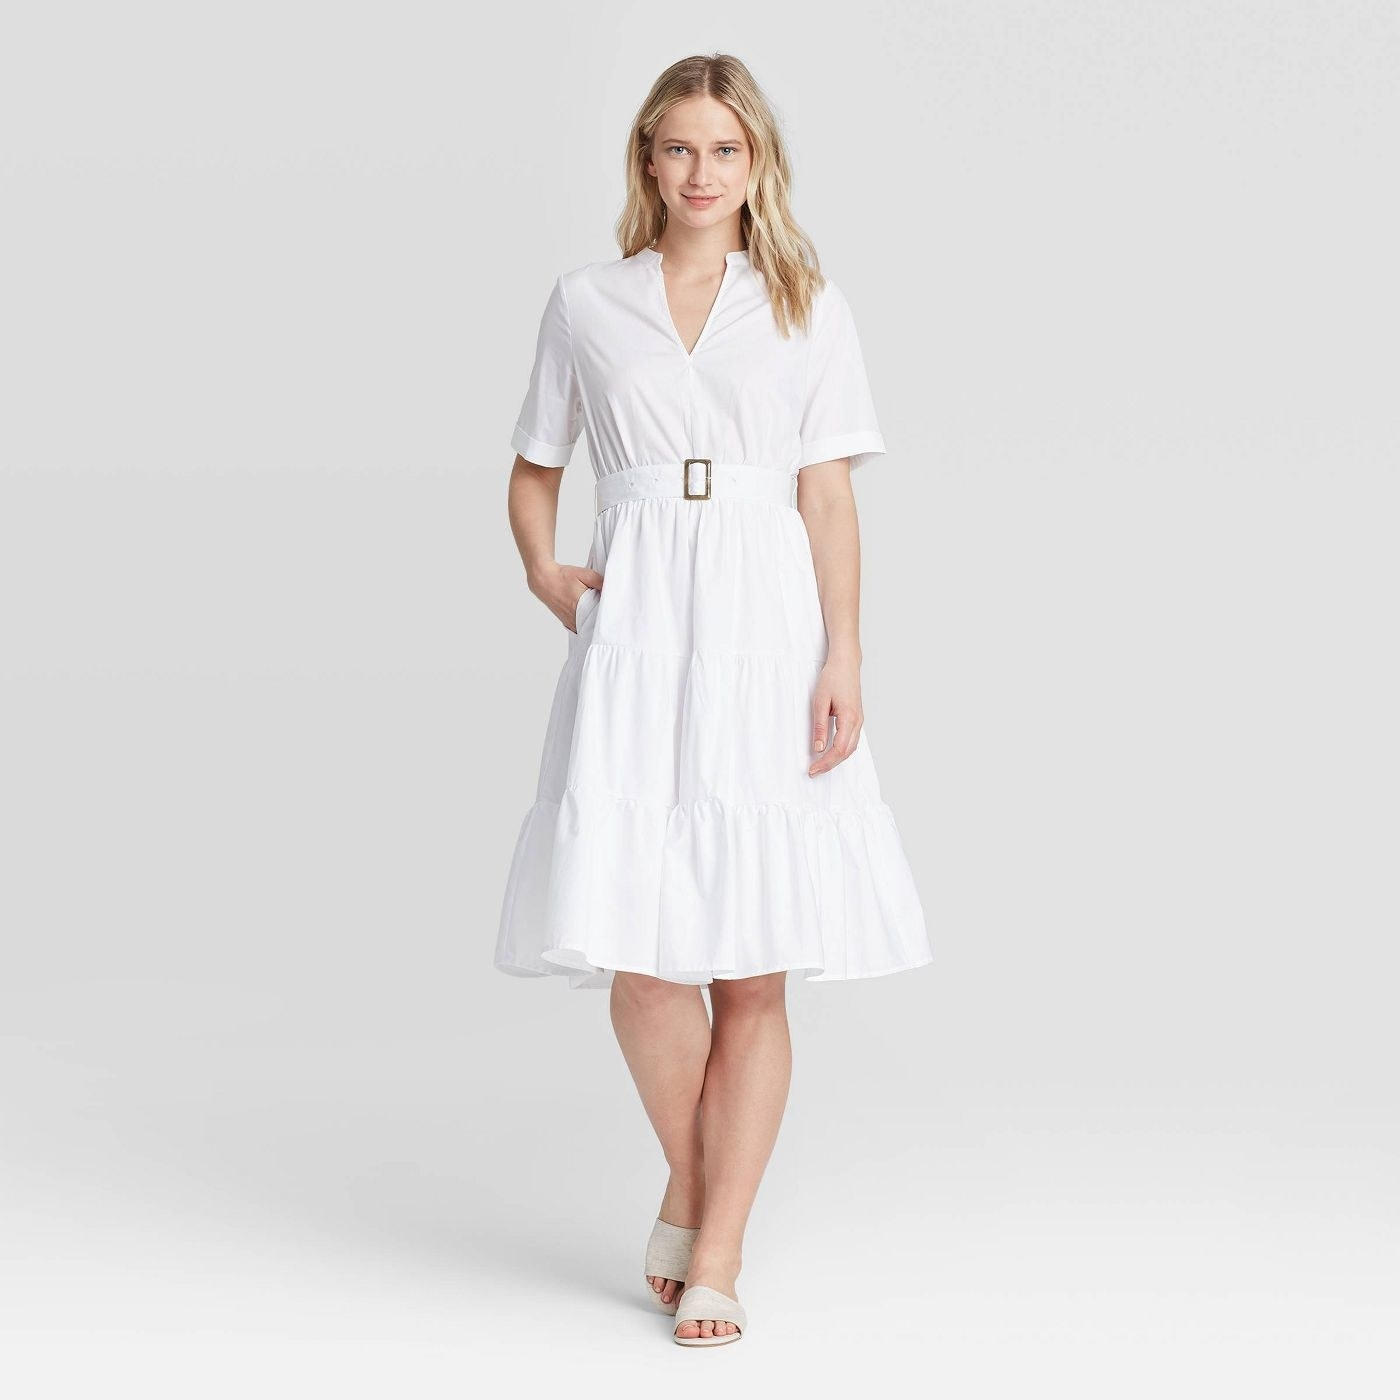 A model in a tiered white knee-length dress with a V-neckline